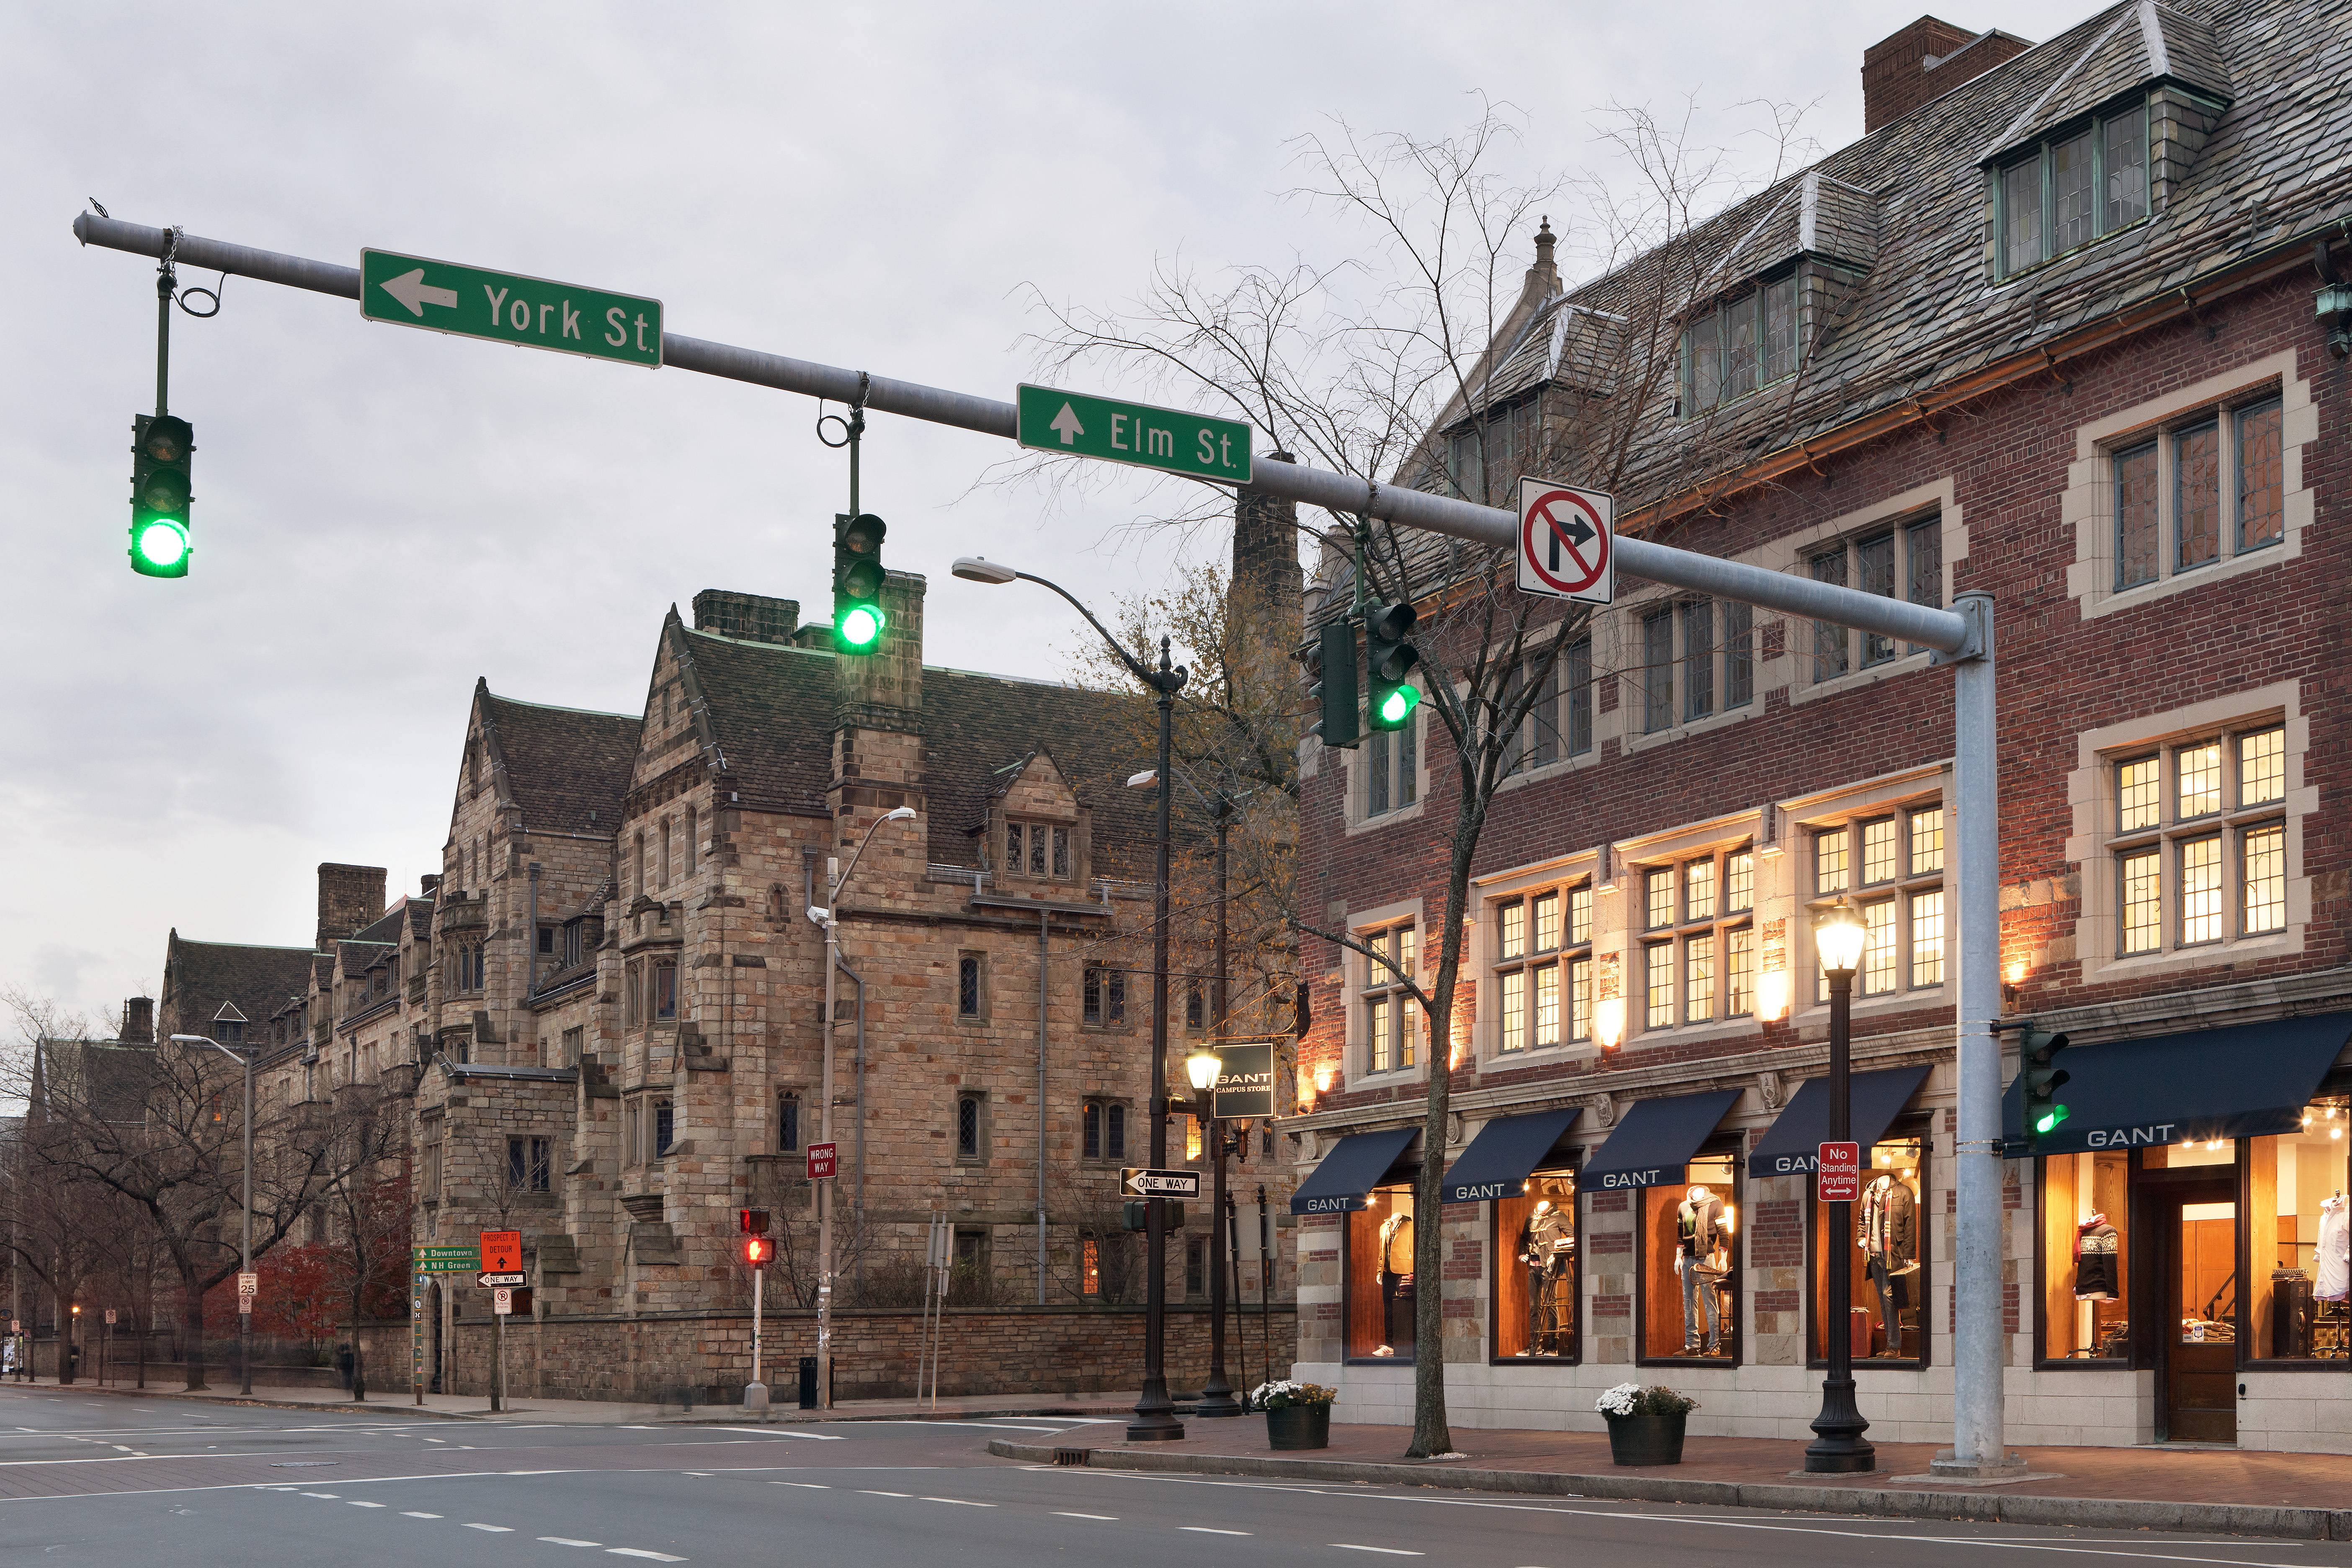 GANT Campus Store - New Haven CT 2